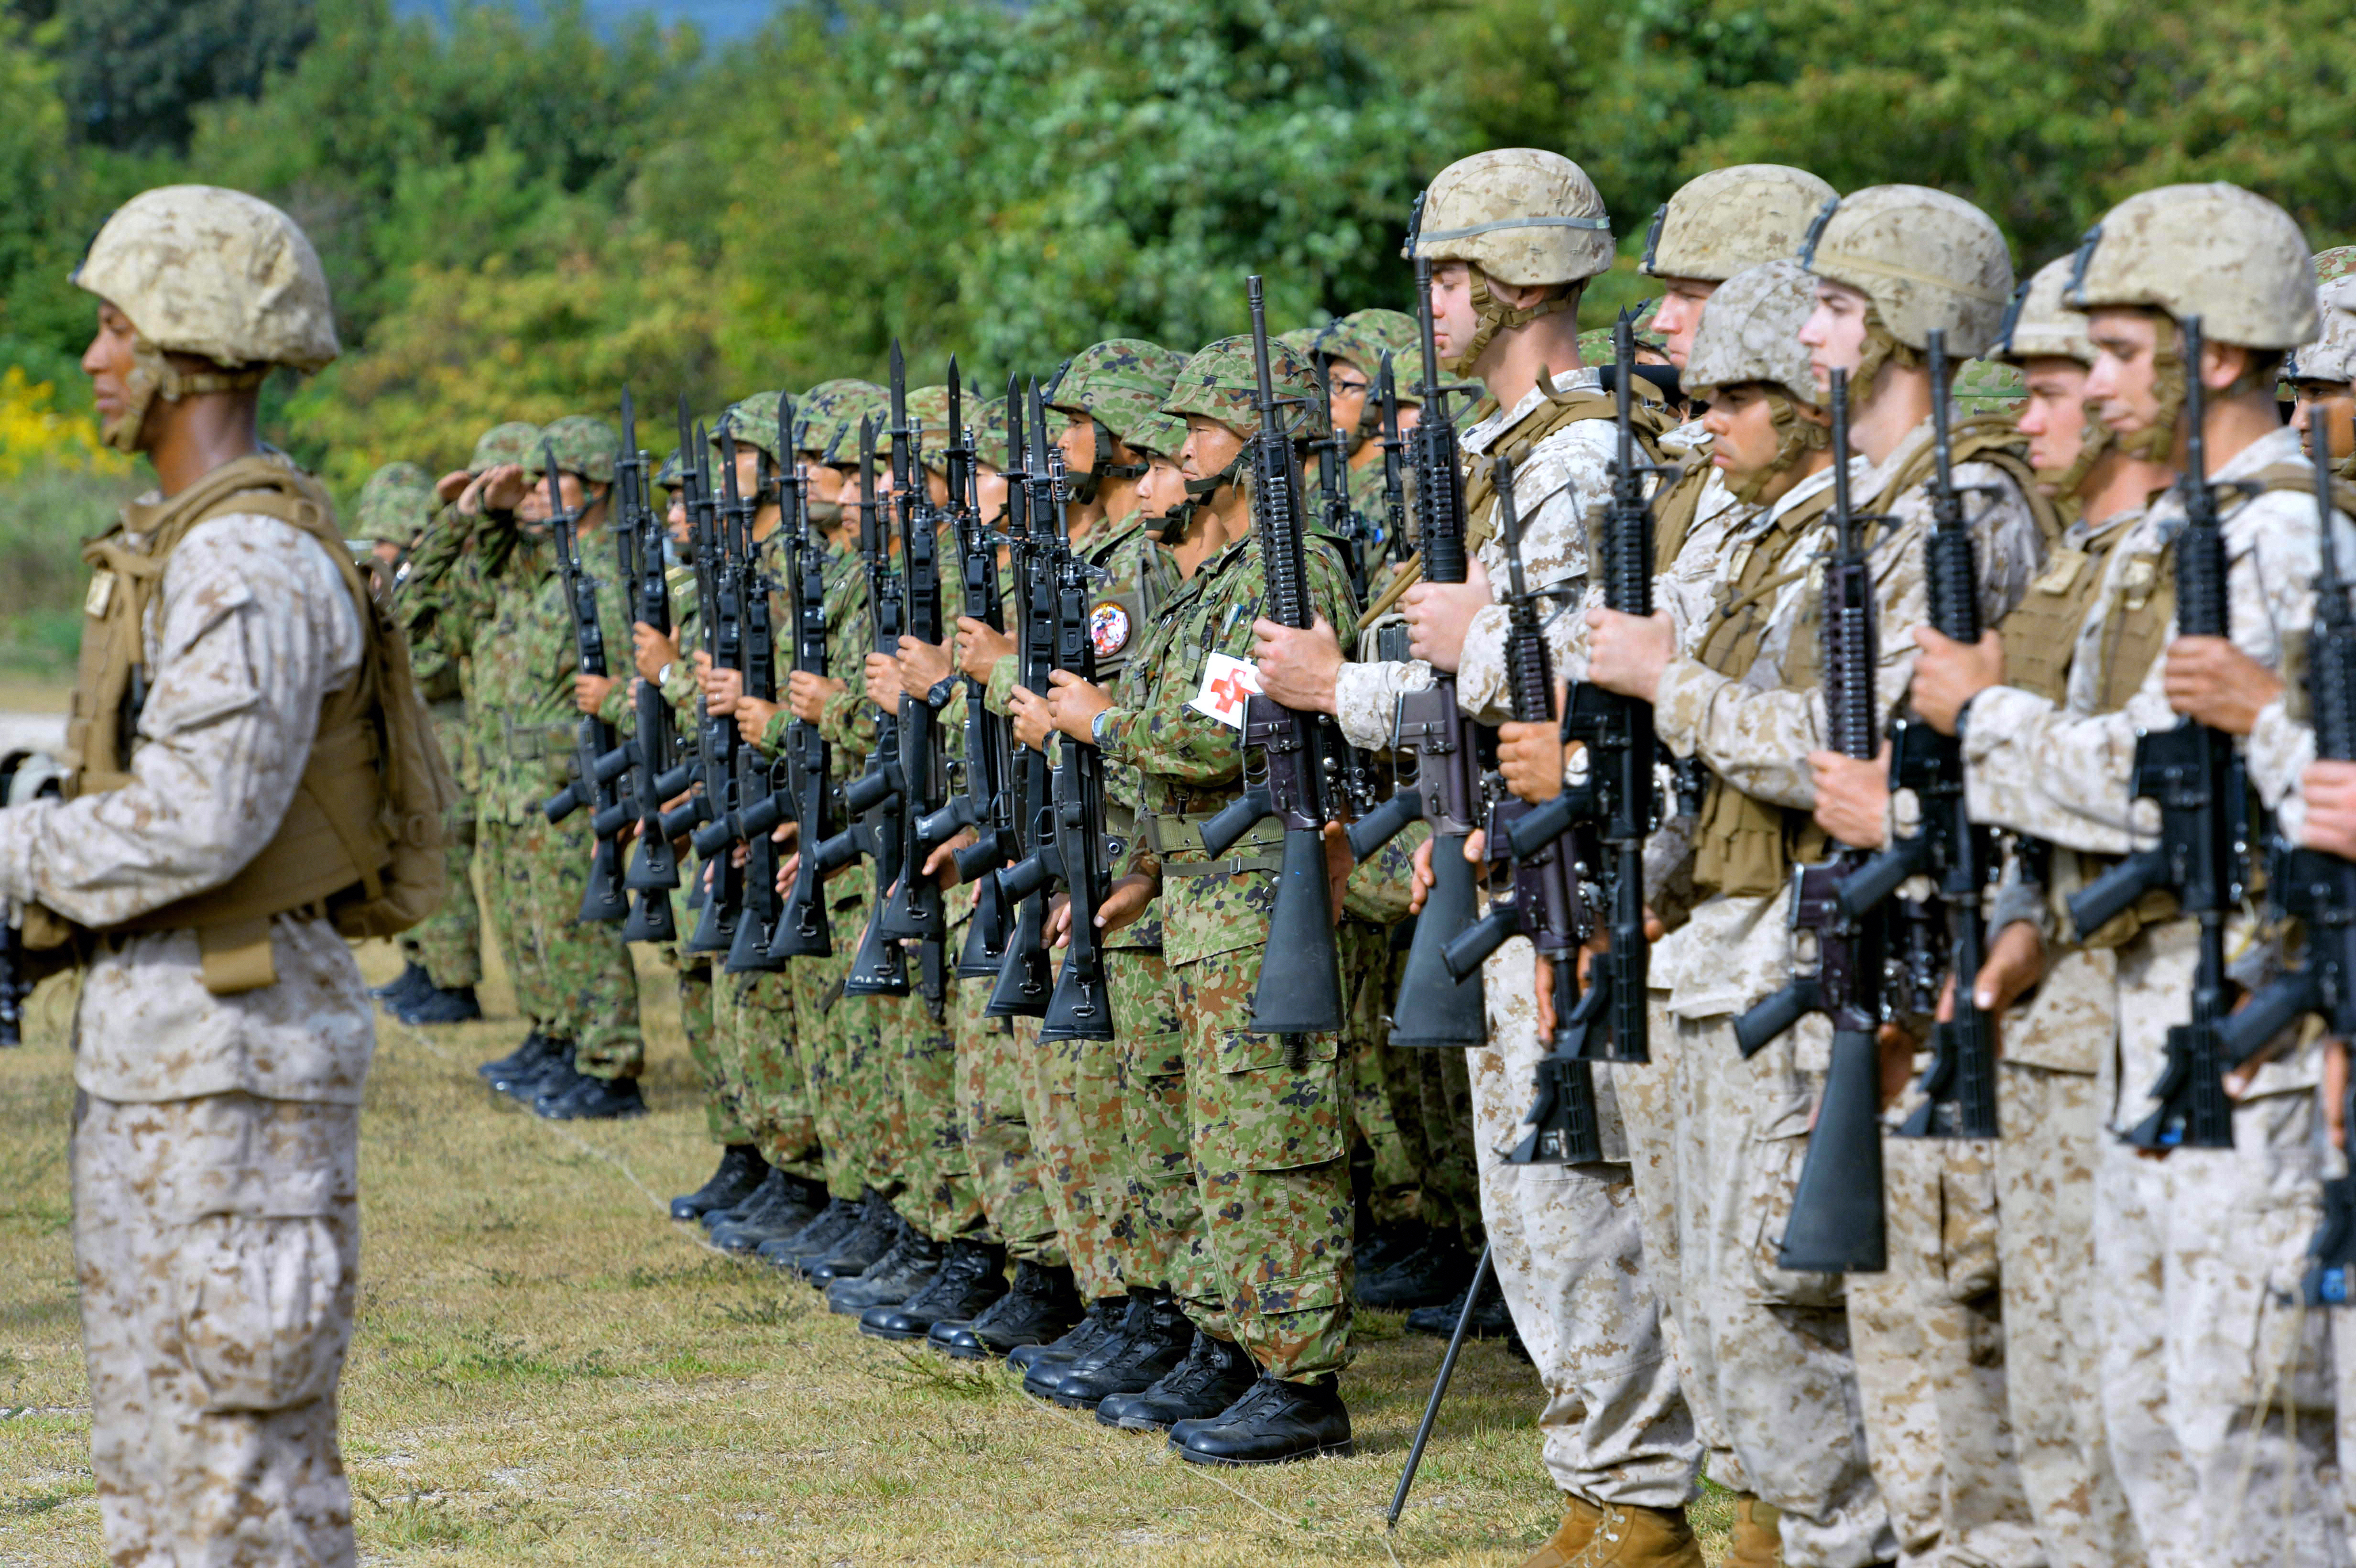 U.S. Marines and members of the Japan Ground Self-Defense Force line up before a joint exercise at the JGSDF's Aibano facility in Takashima, Japan, on Oct. 8, 2013